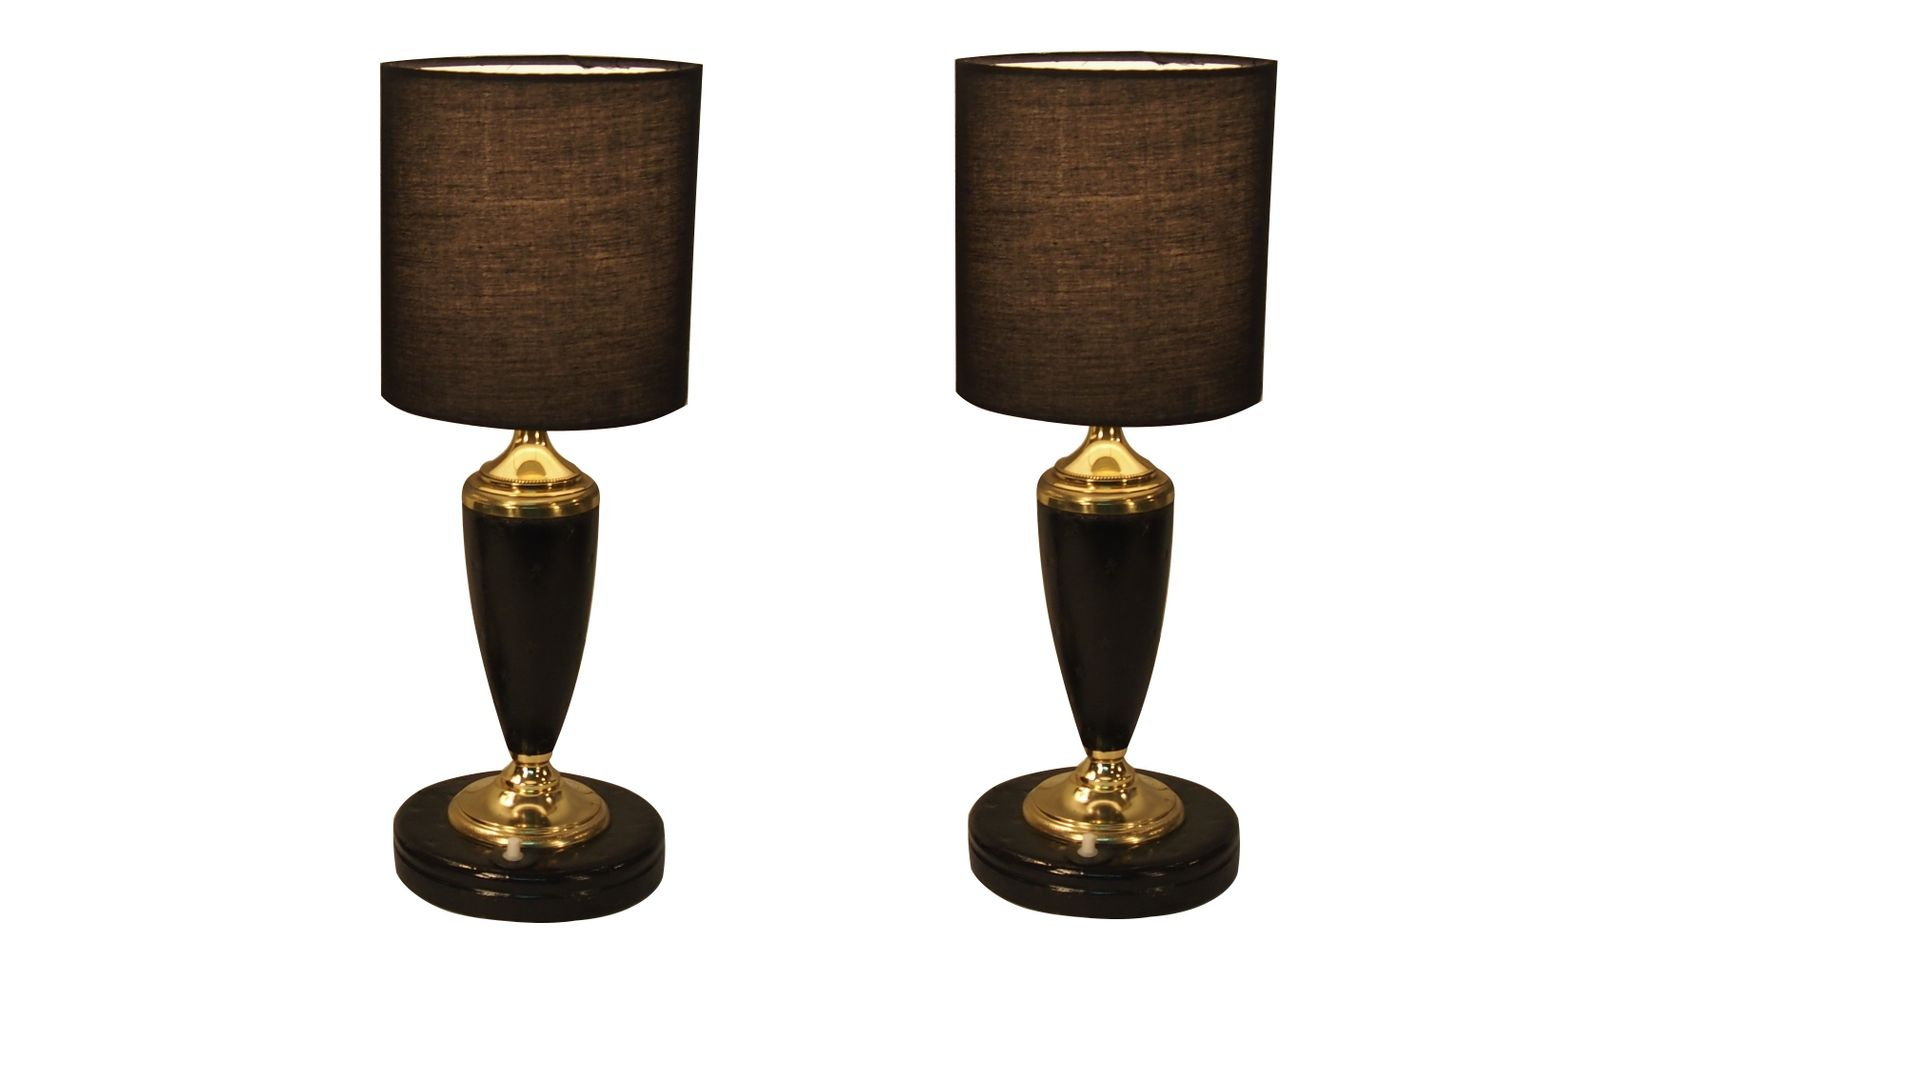 Art deco table lamps in black with gilt elements from le tanneur art deco table lamps in black with gilt elements from le tanneur set of 2 geotapseo Images